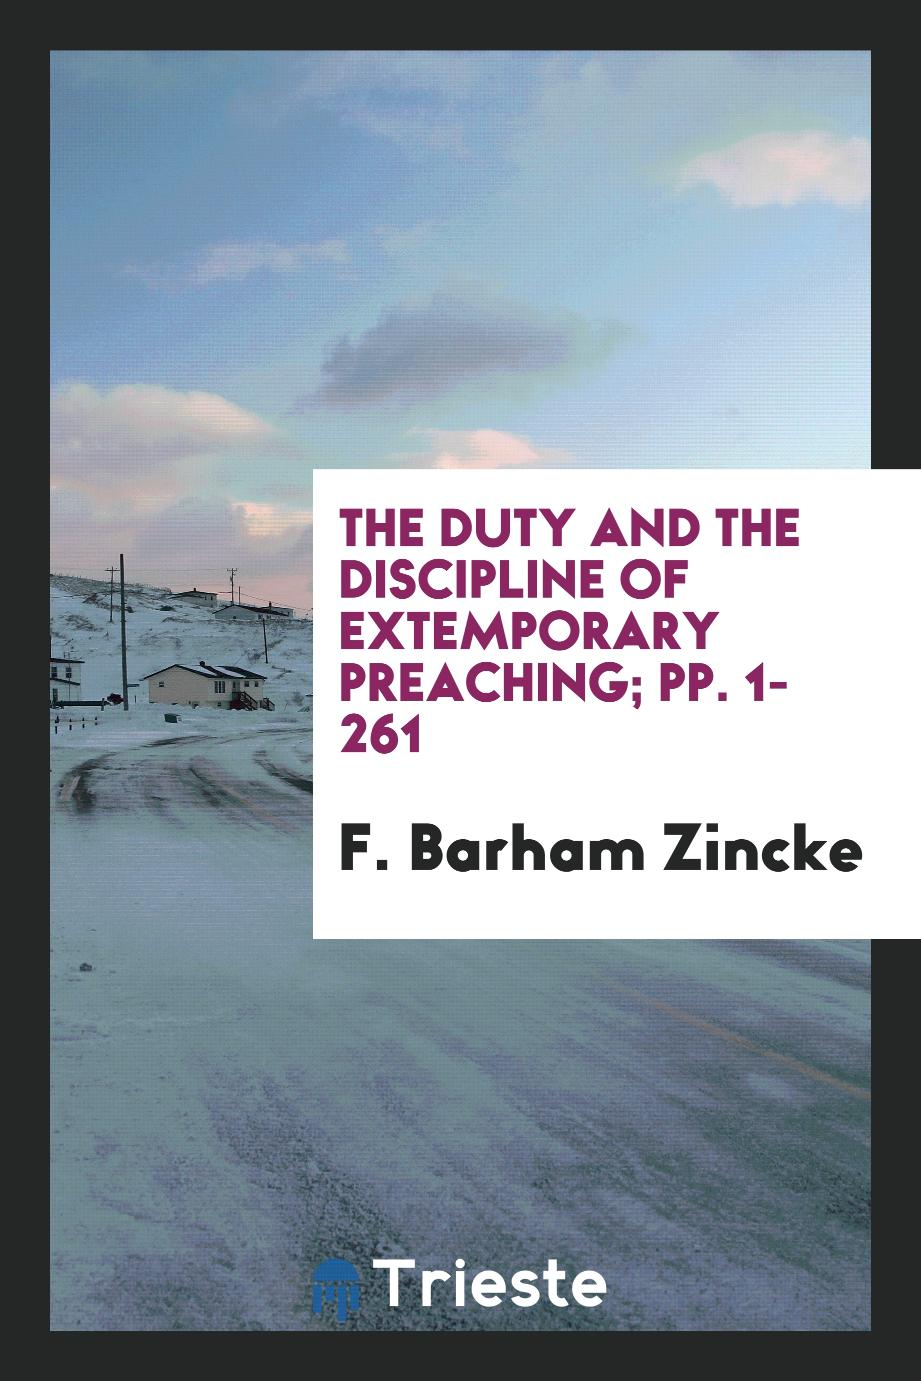 The Duty and the Discipline of Extemporary Preaching; pp. 1-261